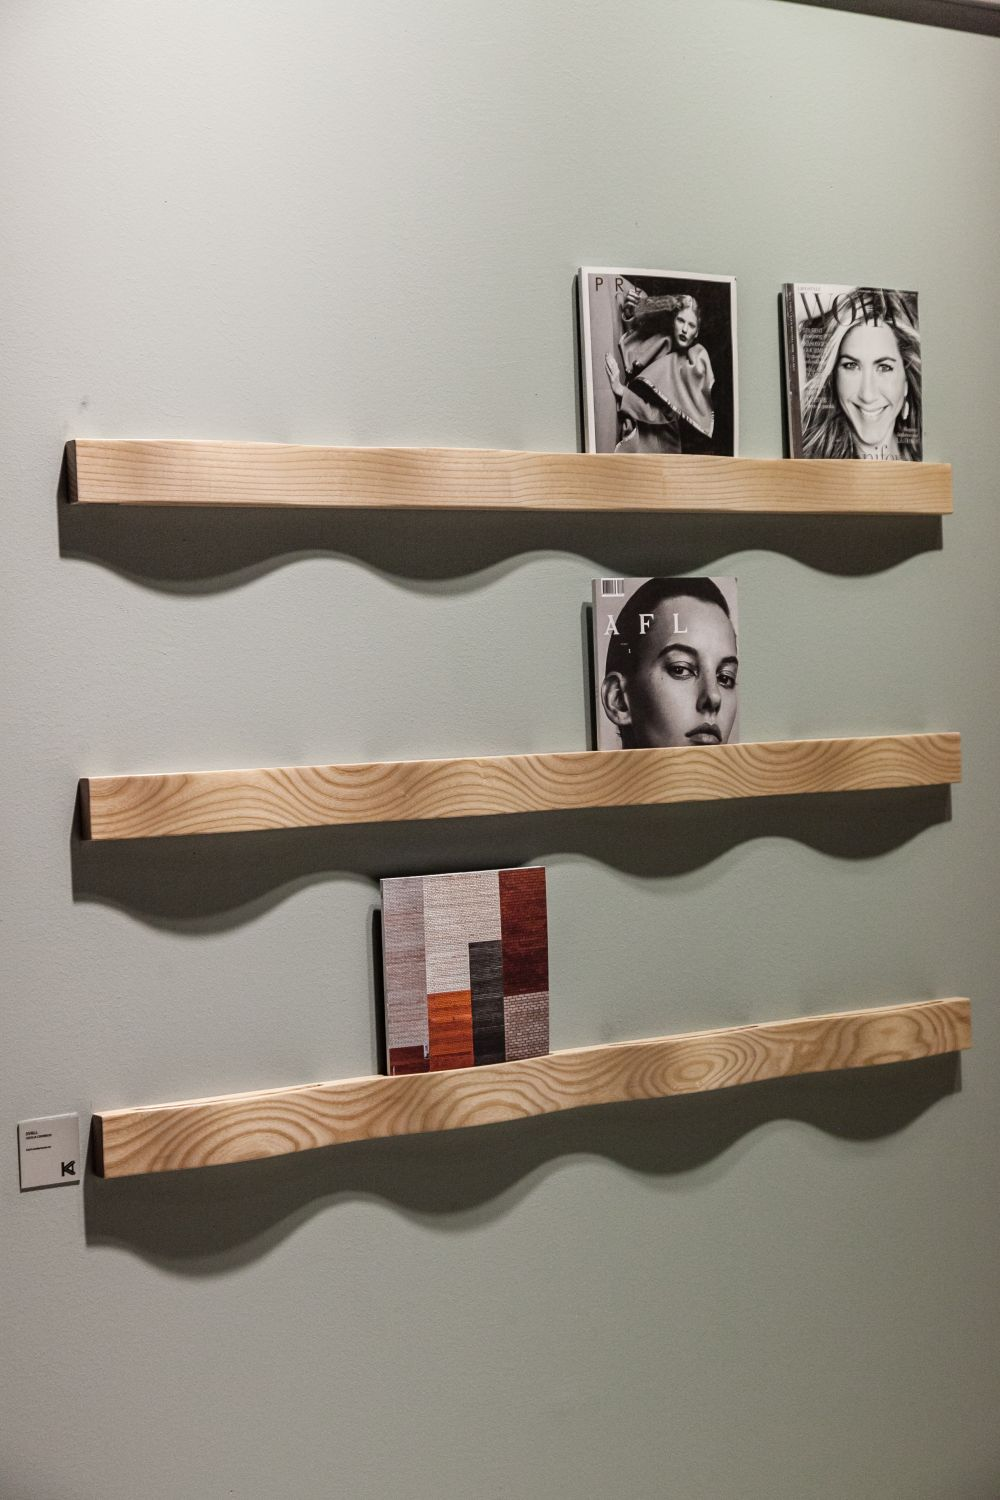 Wall To Wall Shelves creative uses and ideas for wall-mounted shelves in home decor